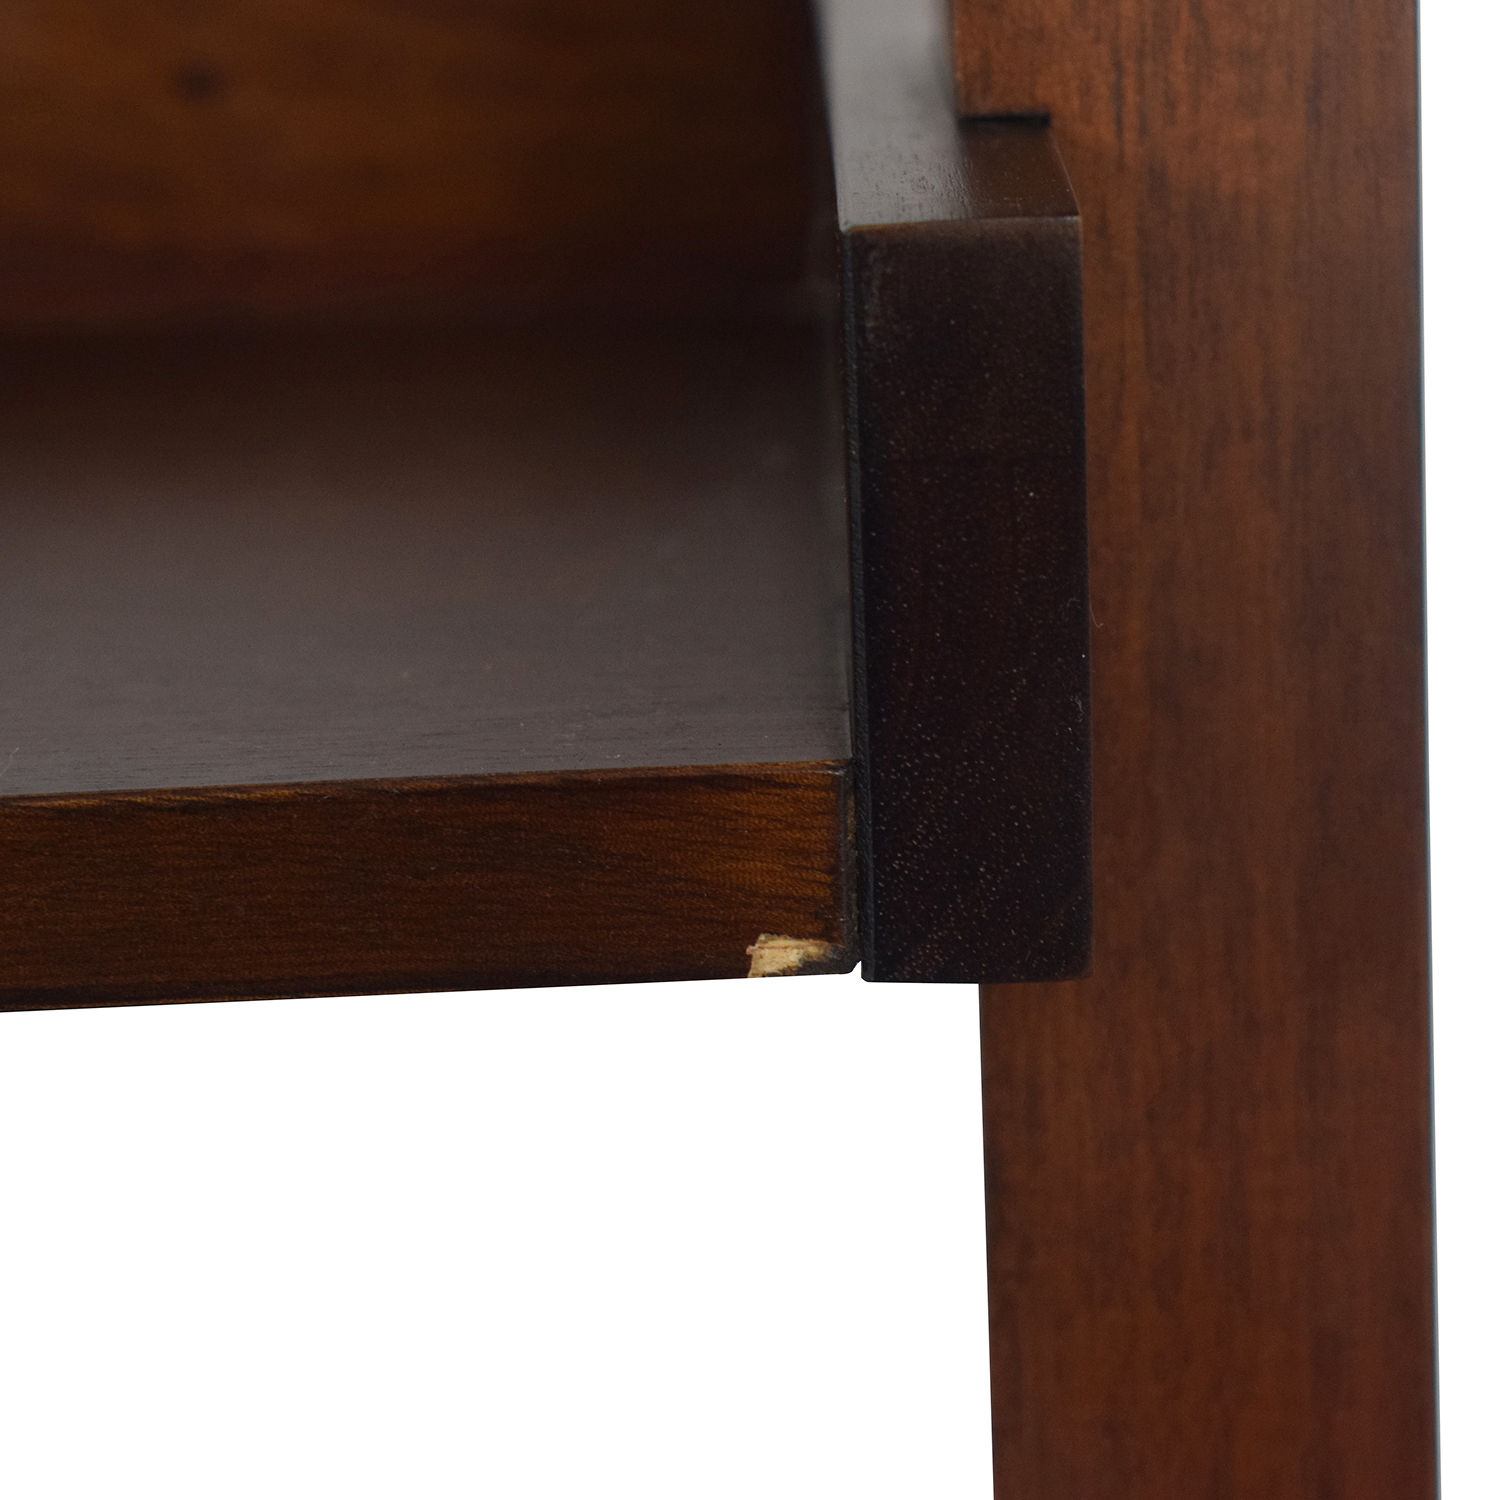 Crate & Barrel Crate & Barrel Wood Leaning Bookcase price